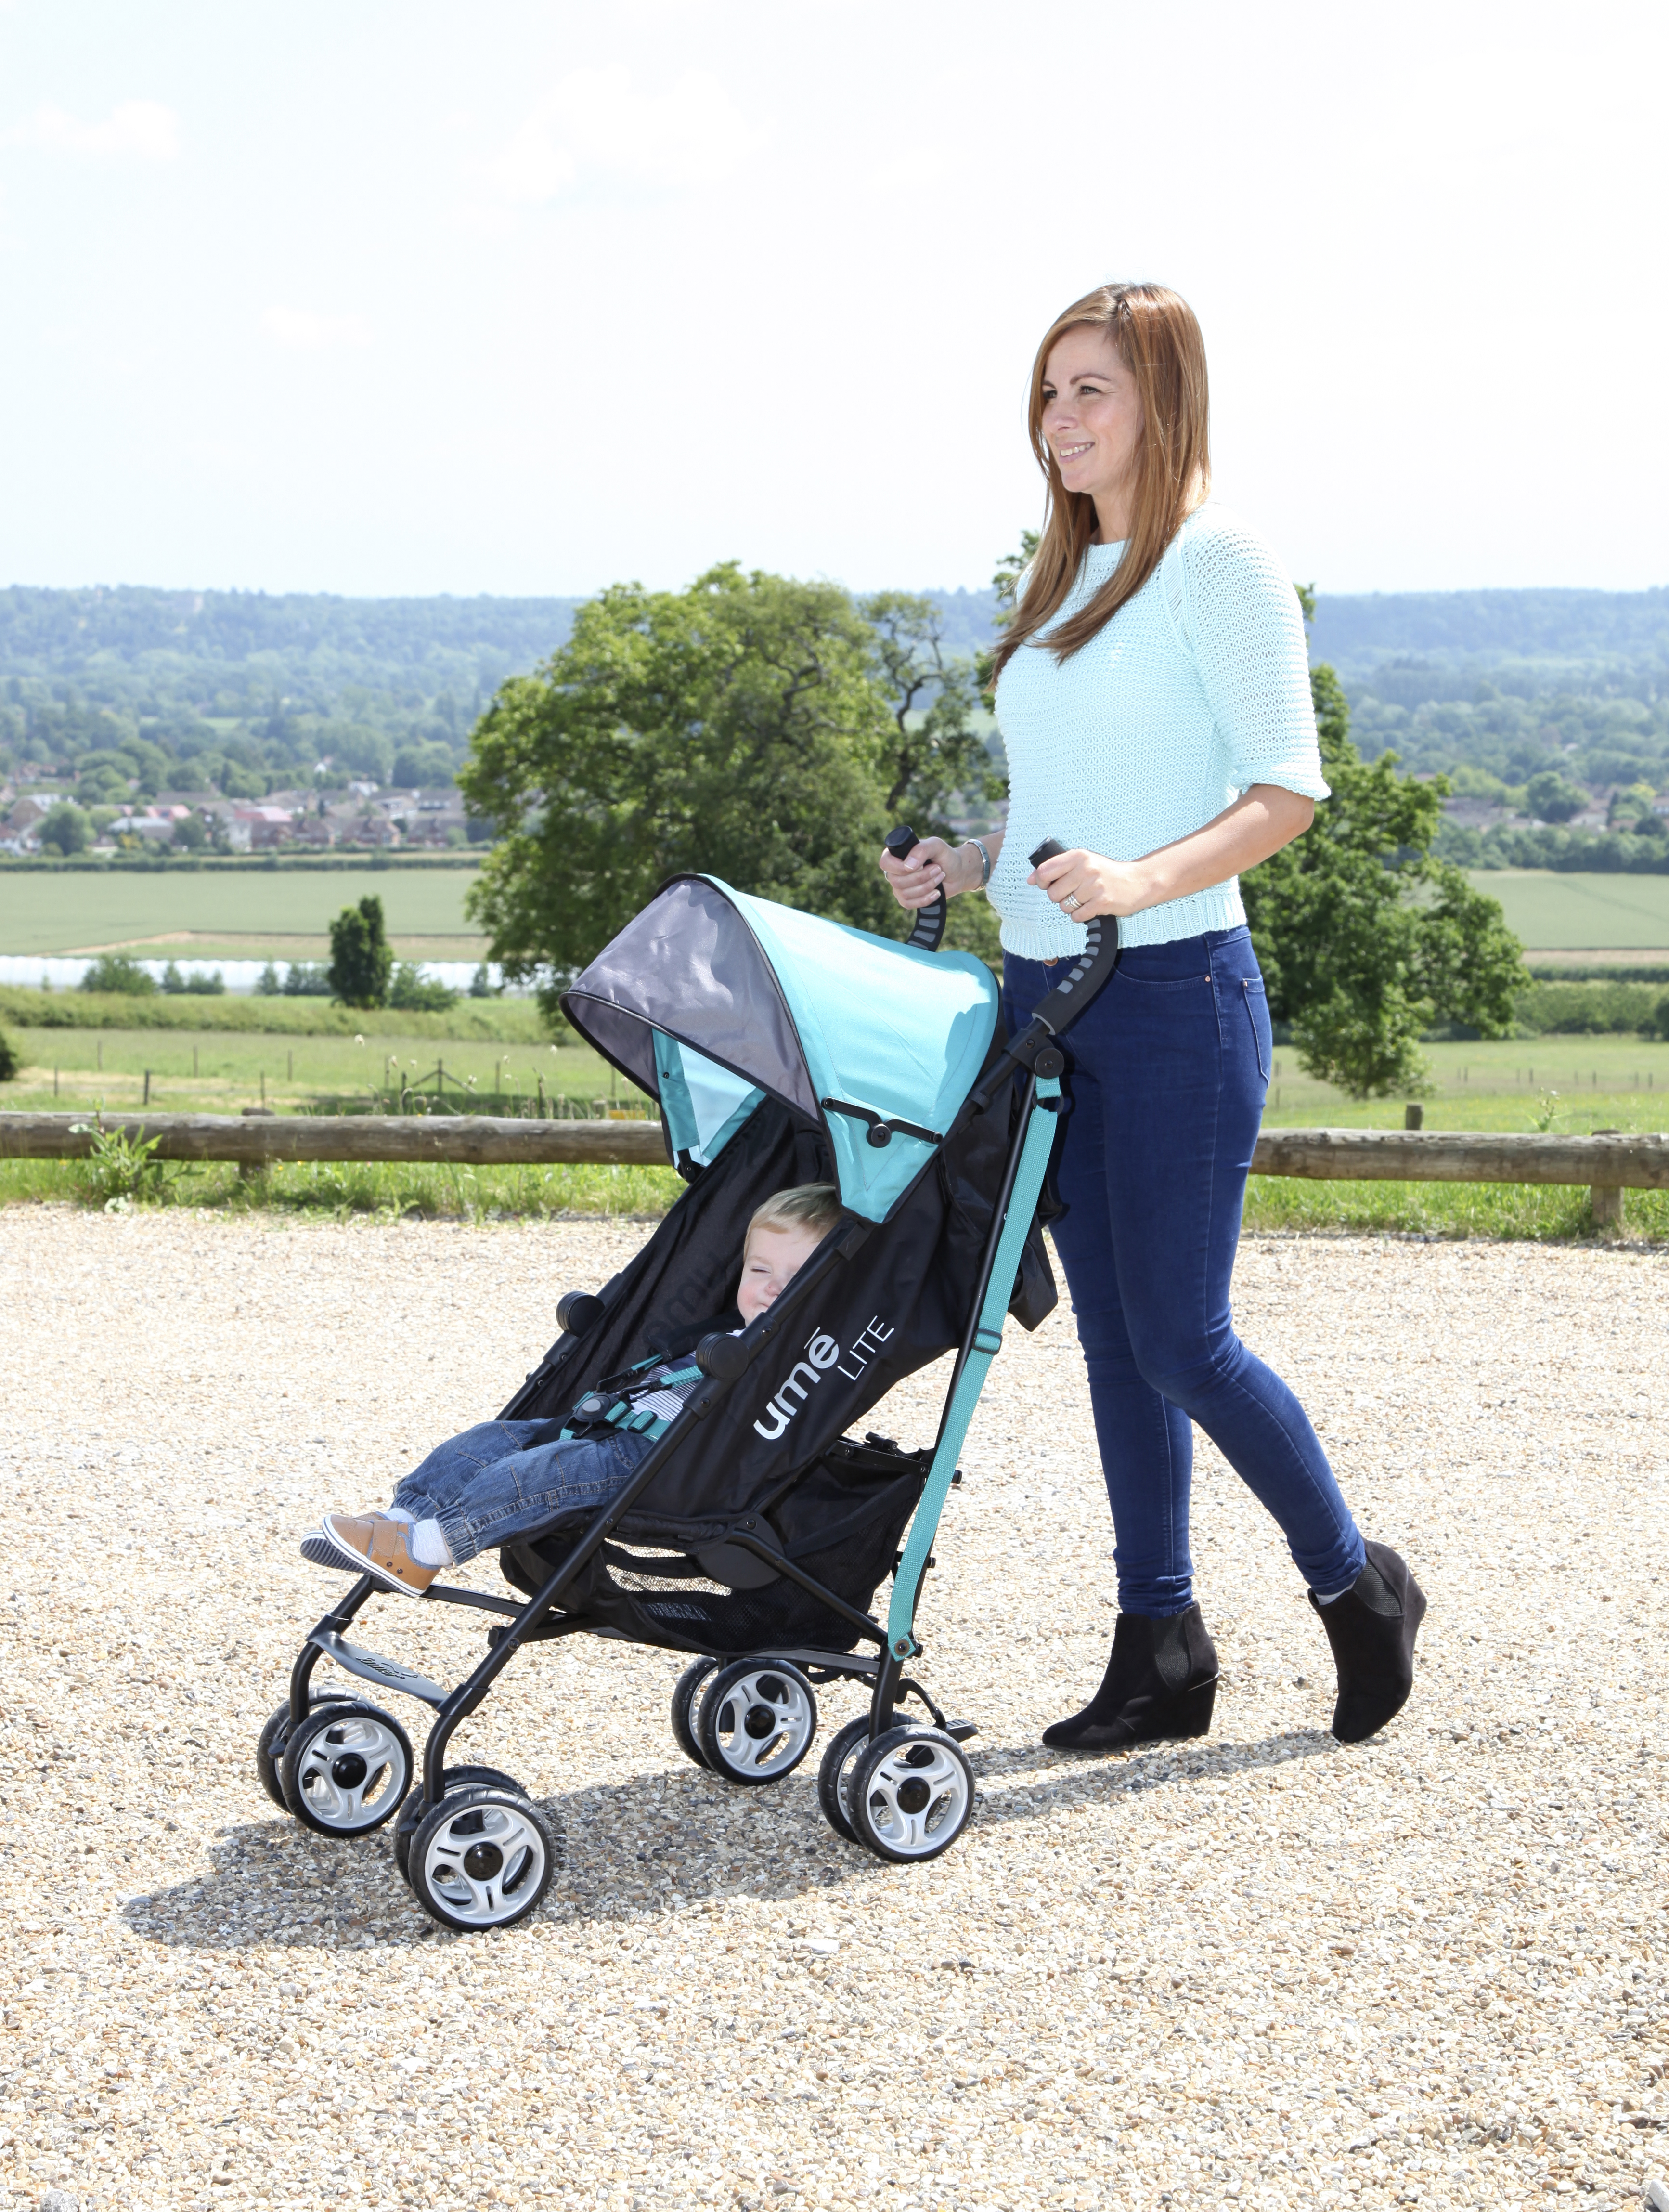 Win a UME Lite Stroller from Summer Infant